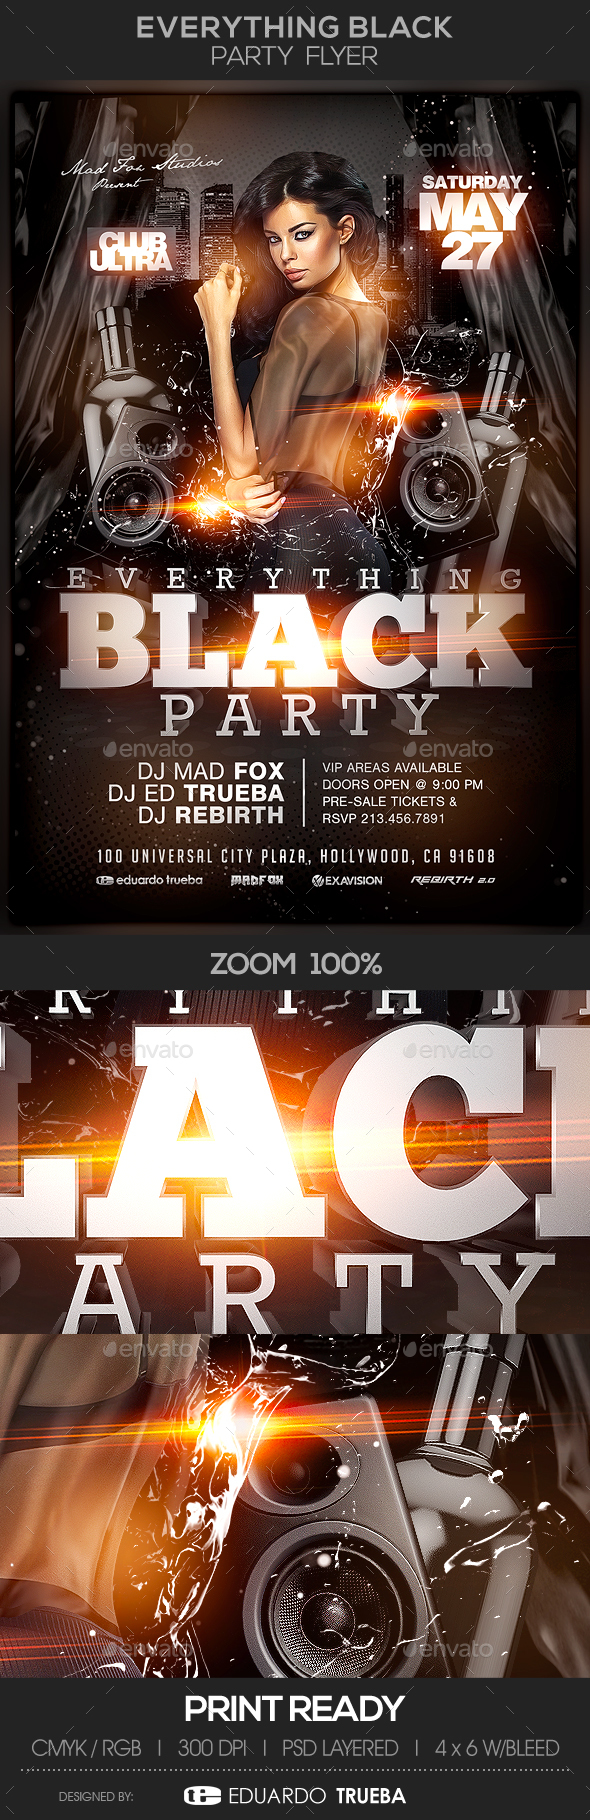 Everything Black Party Flyer - Events Flyers